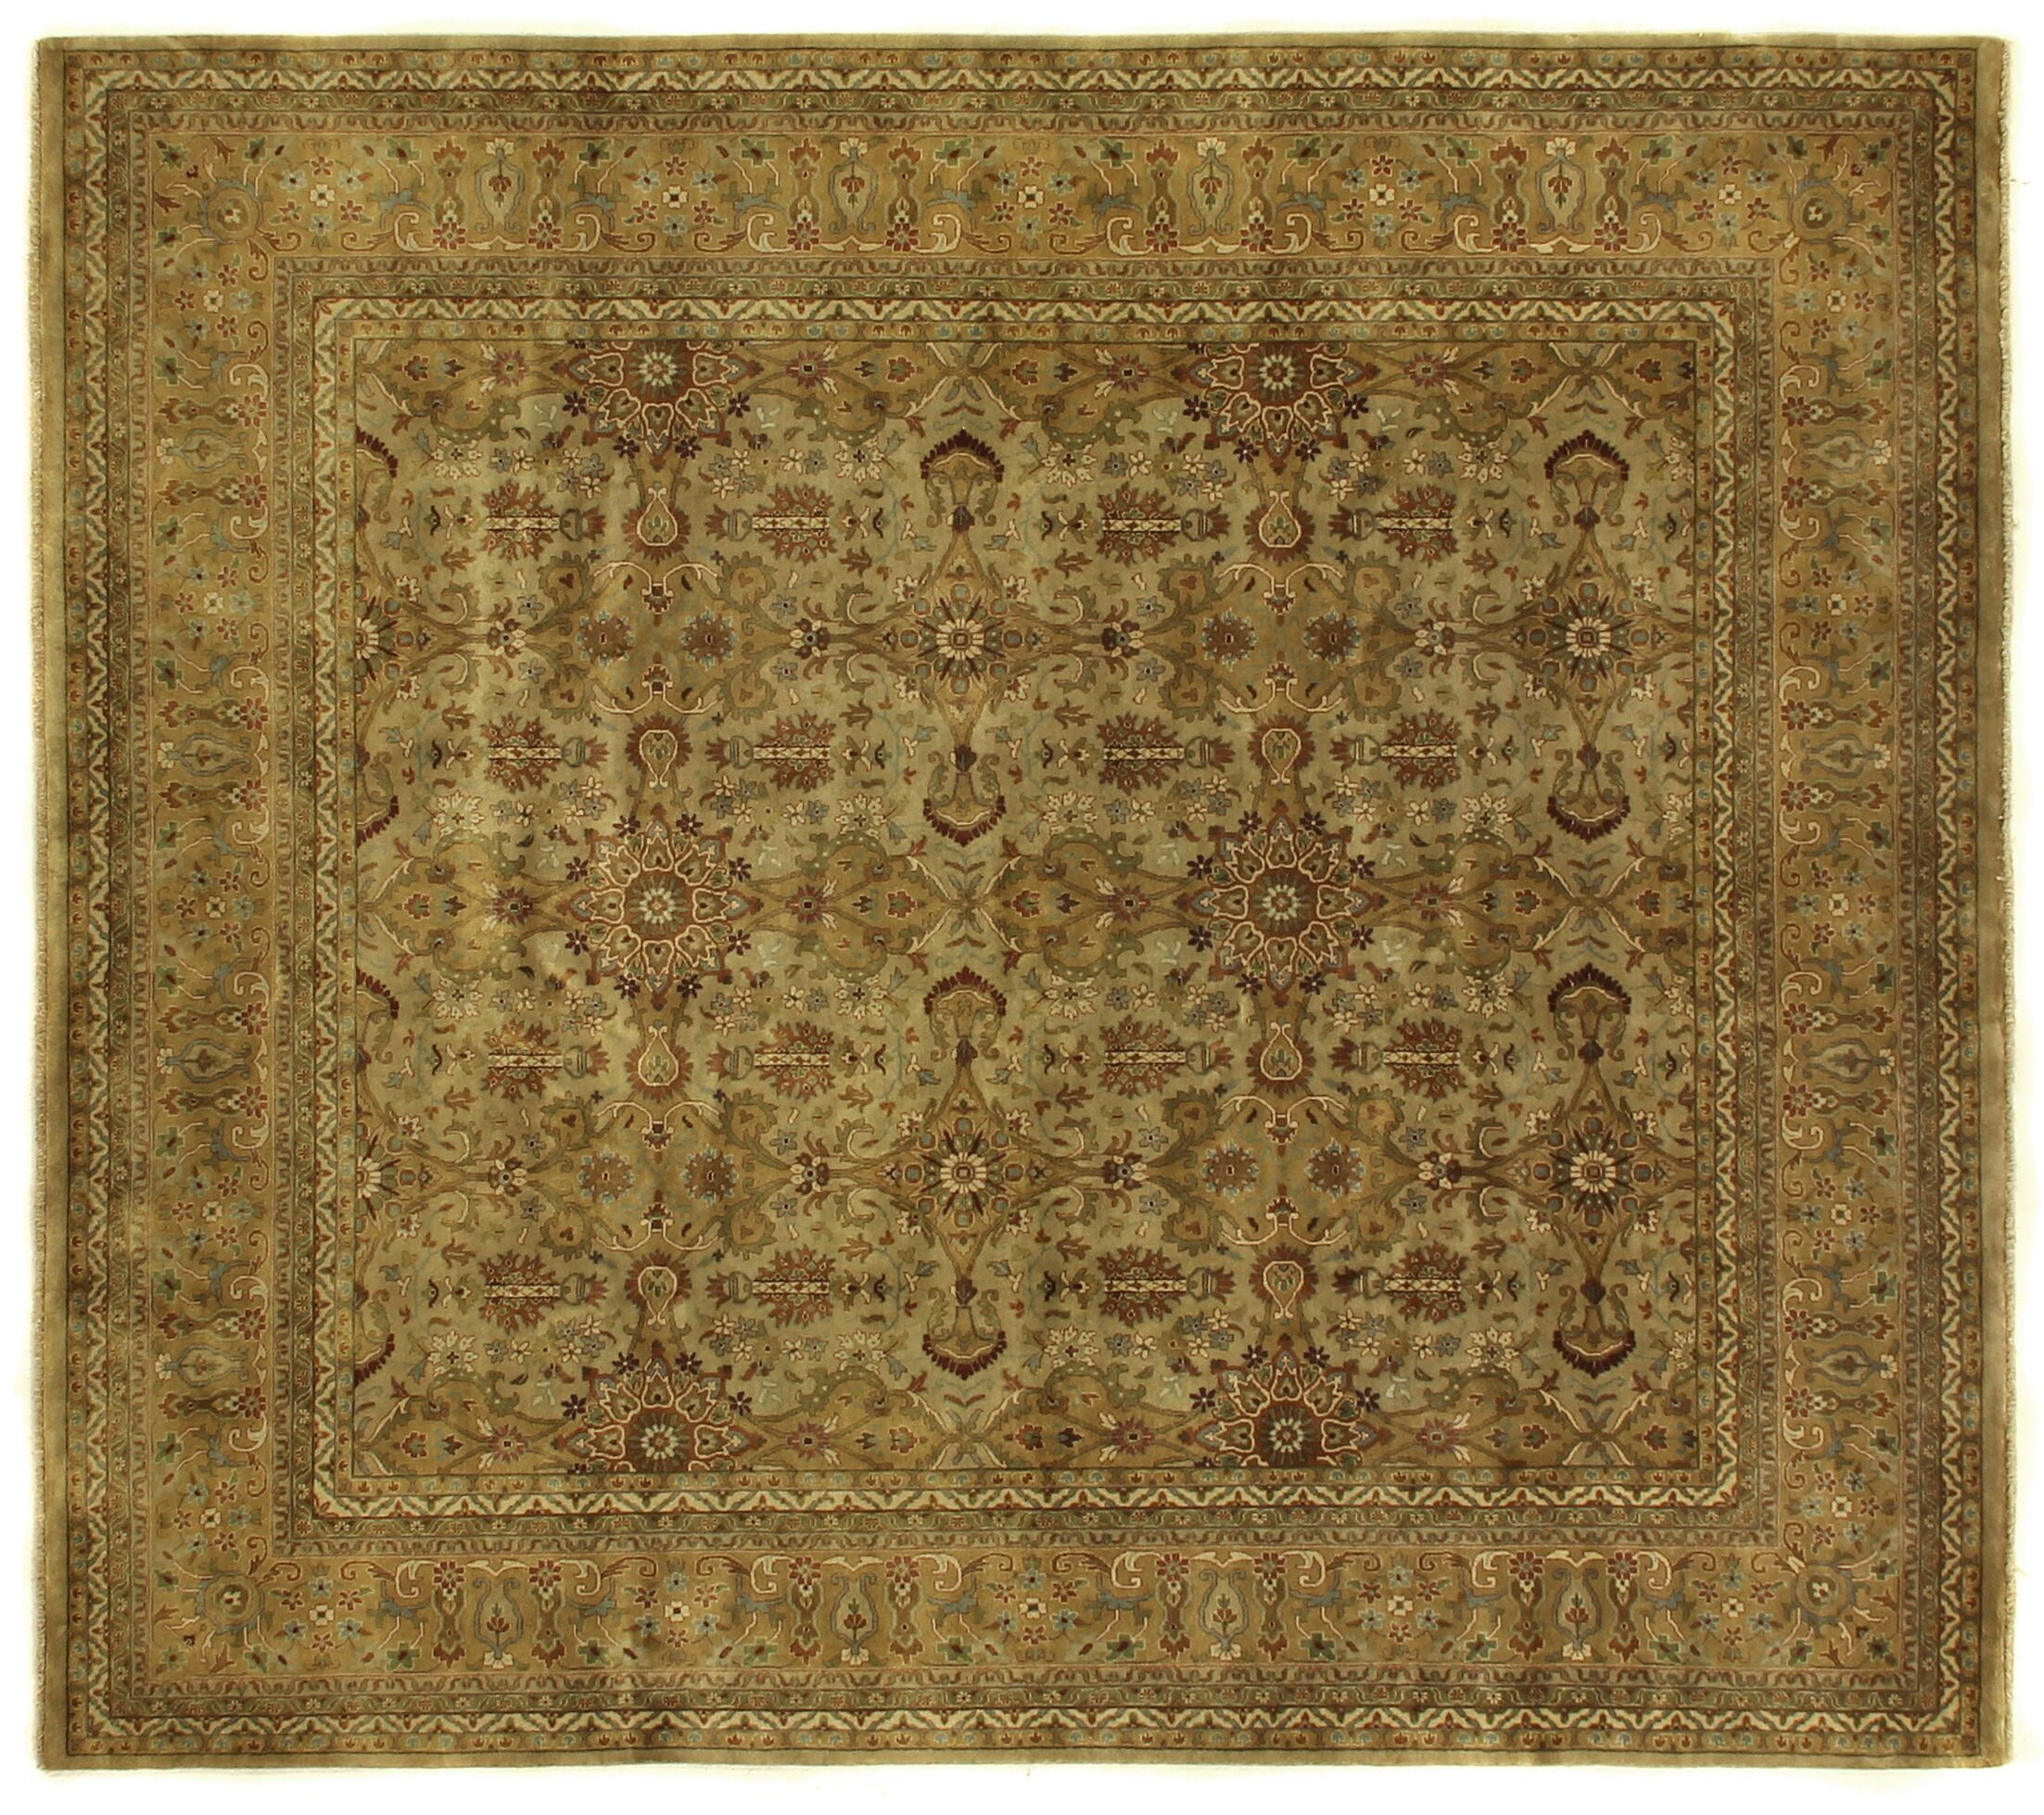 Agra Hand-Knotted Wool Gold/Ivory Area Rug Rug Size: Rectangle 12' x 18'